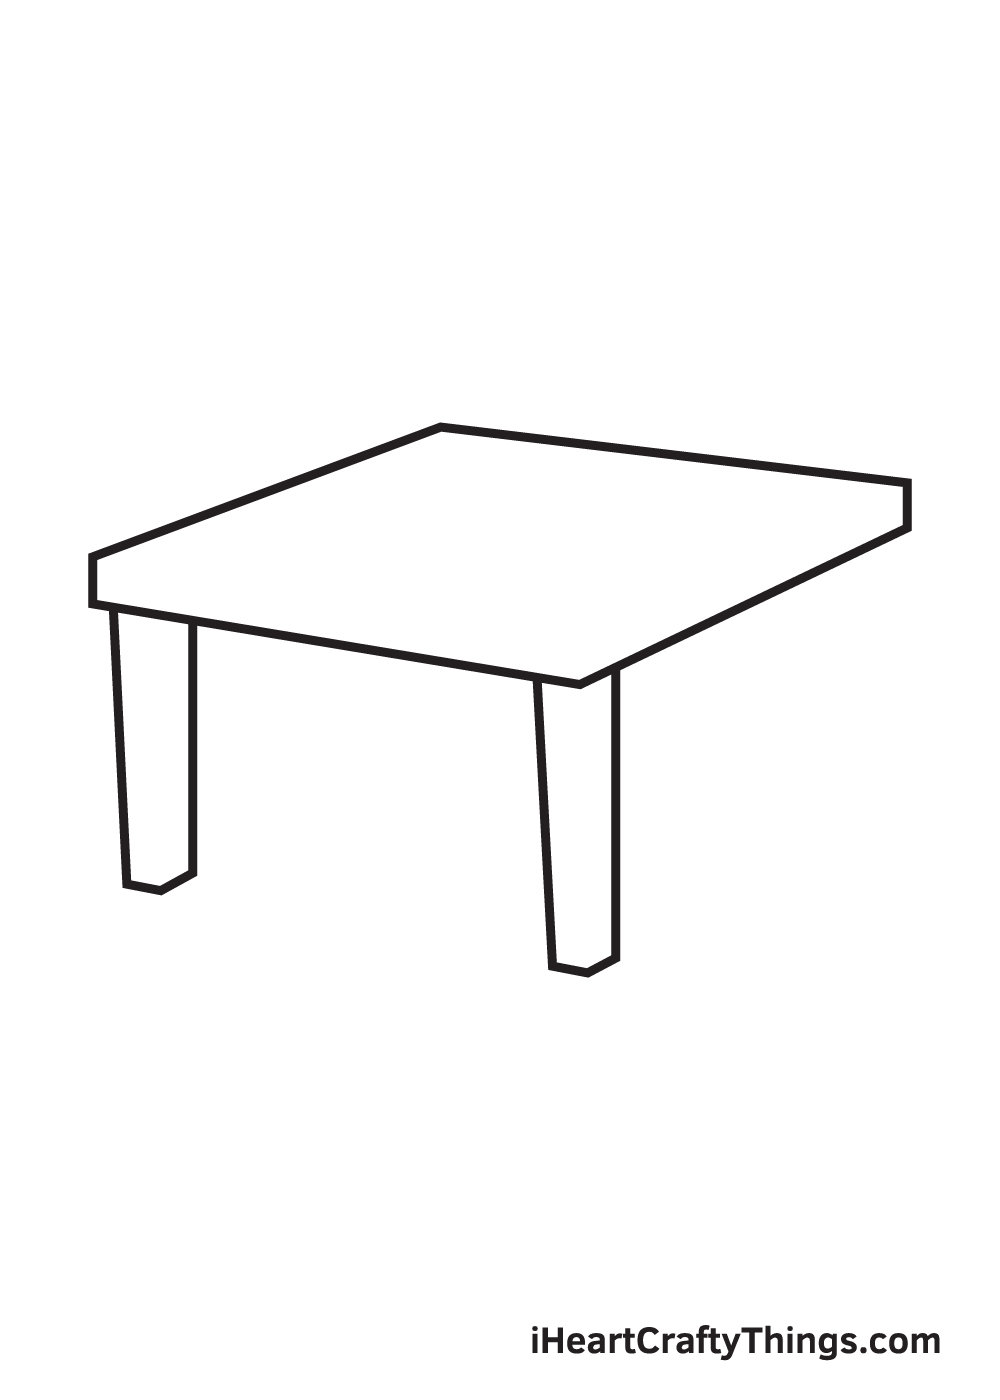 table drawing step 4